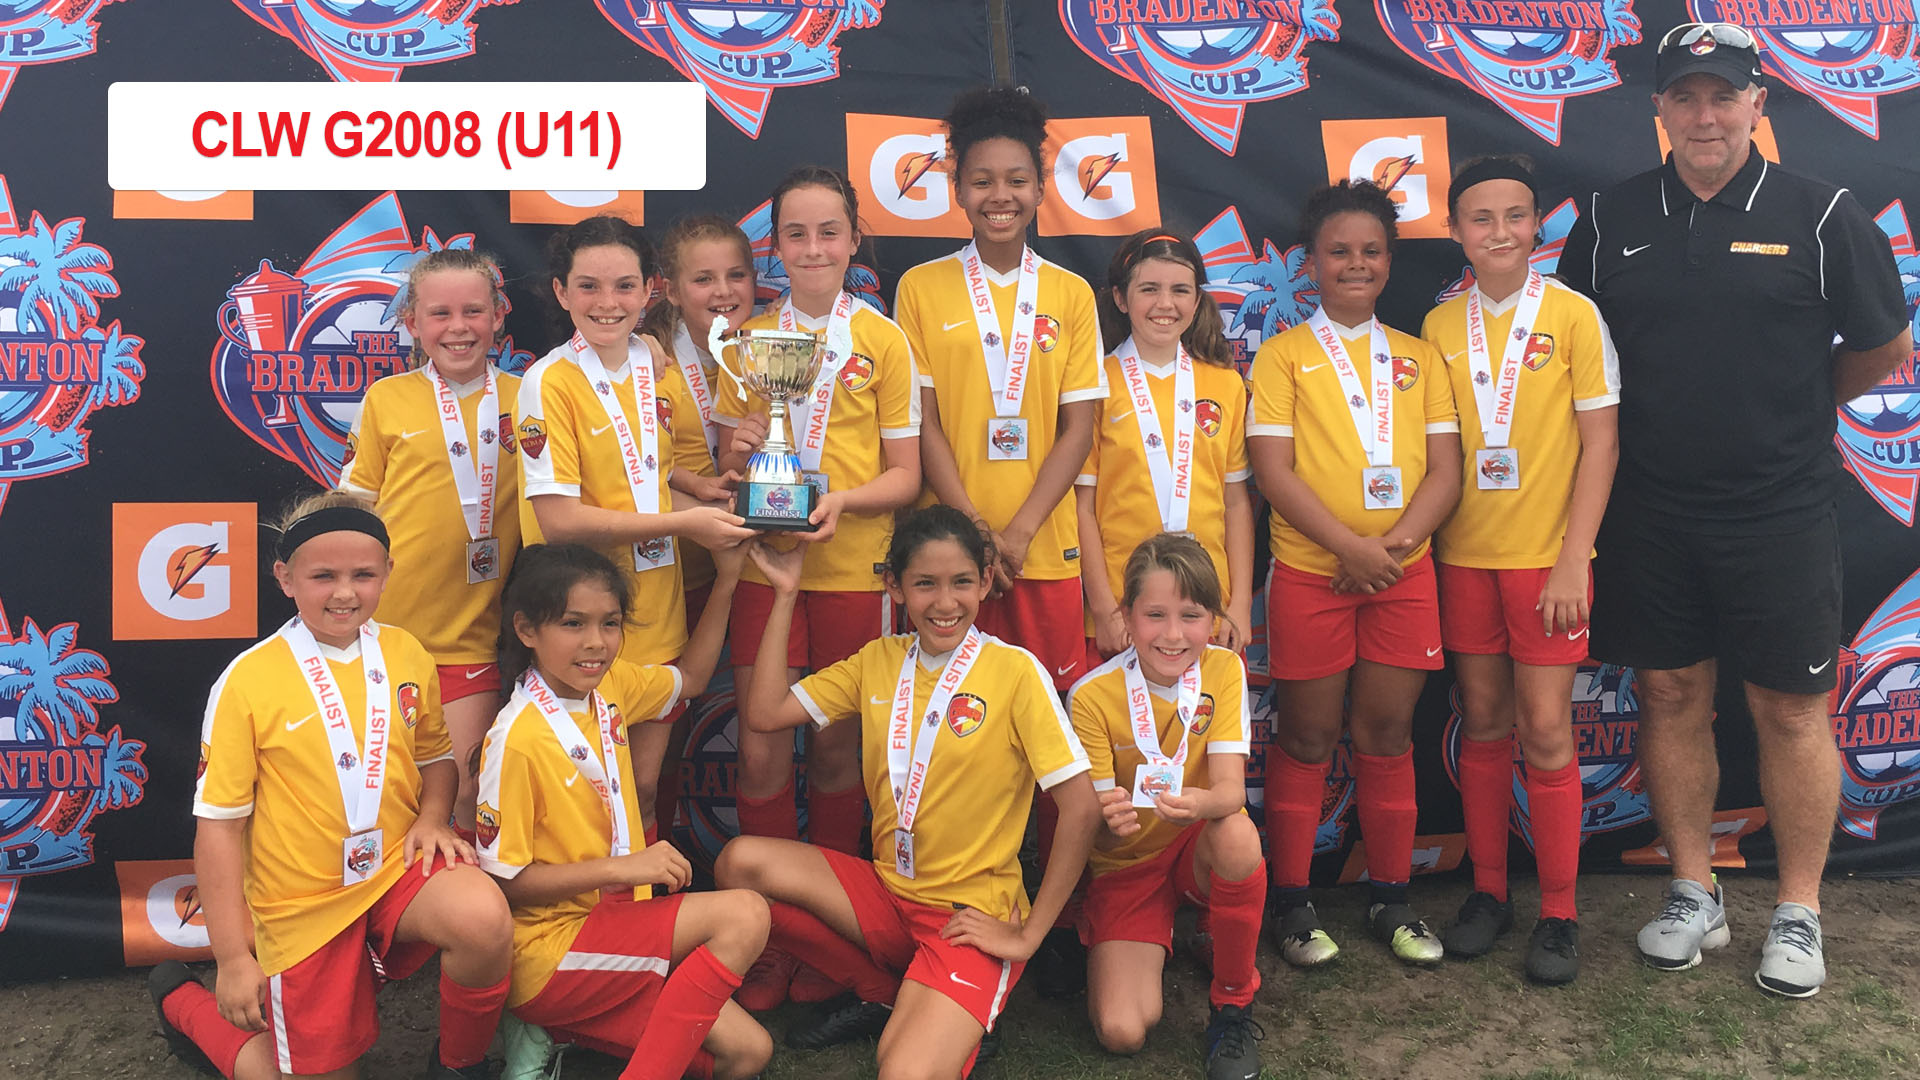 CLW G2008 Bradenton Cup Finalists